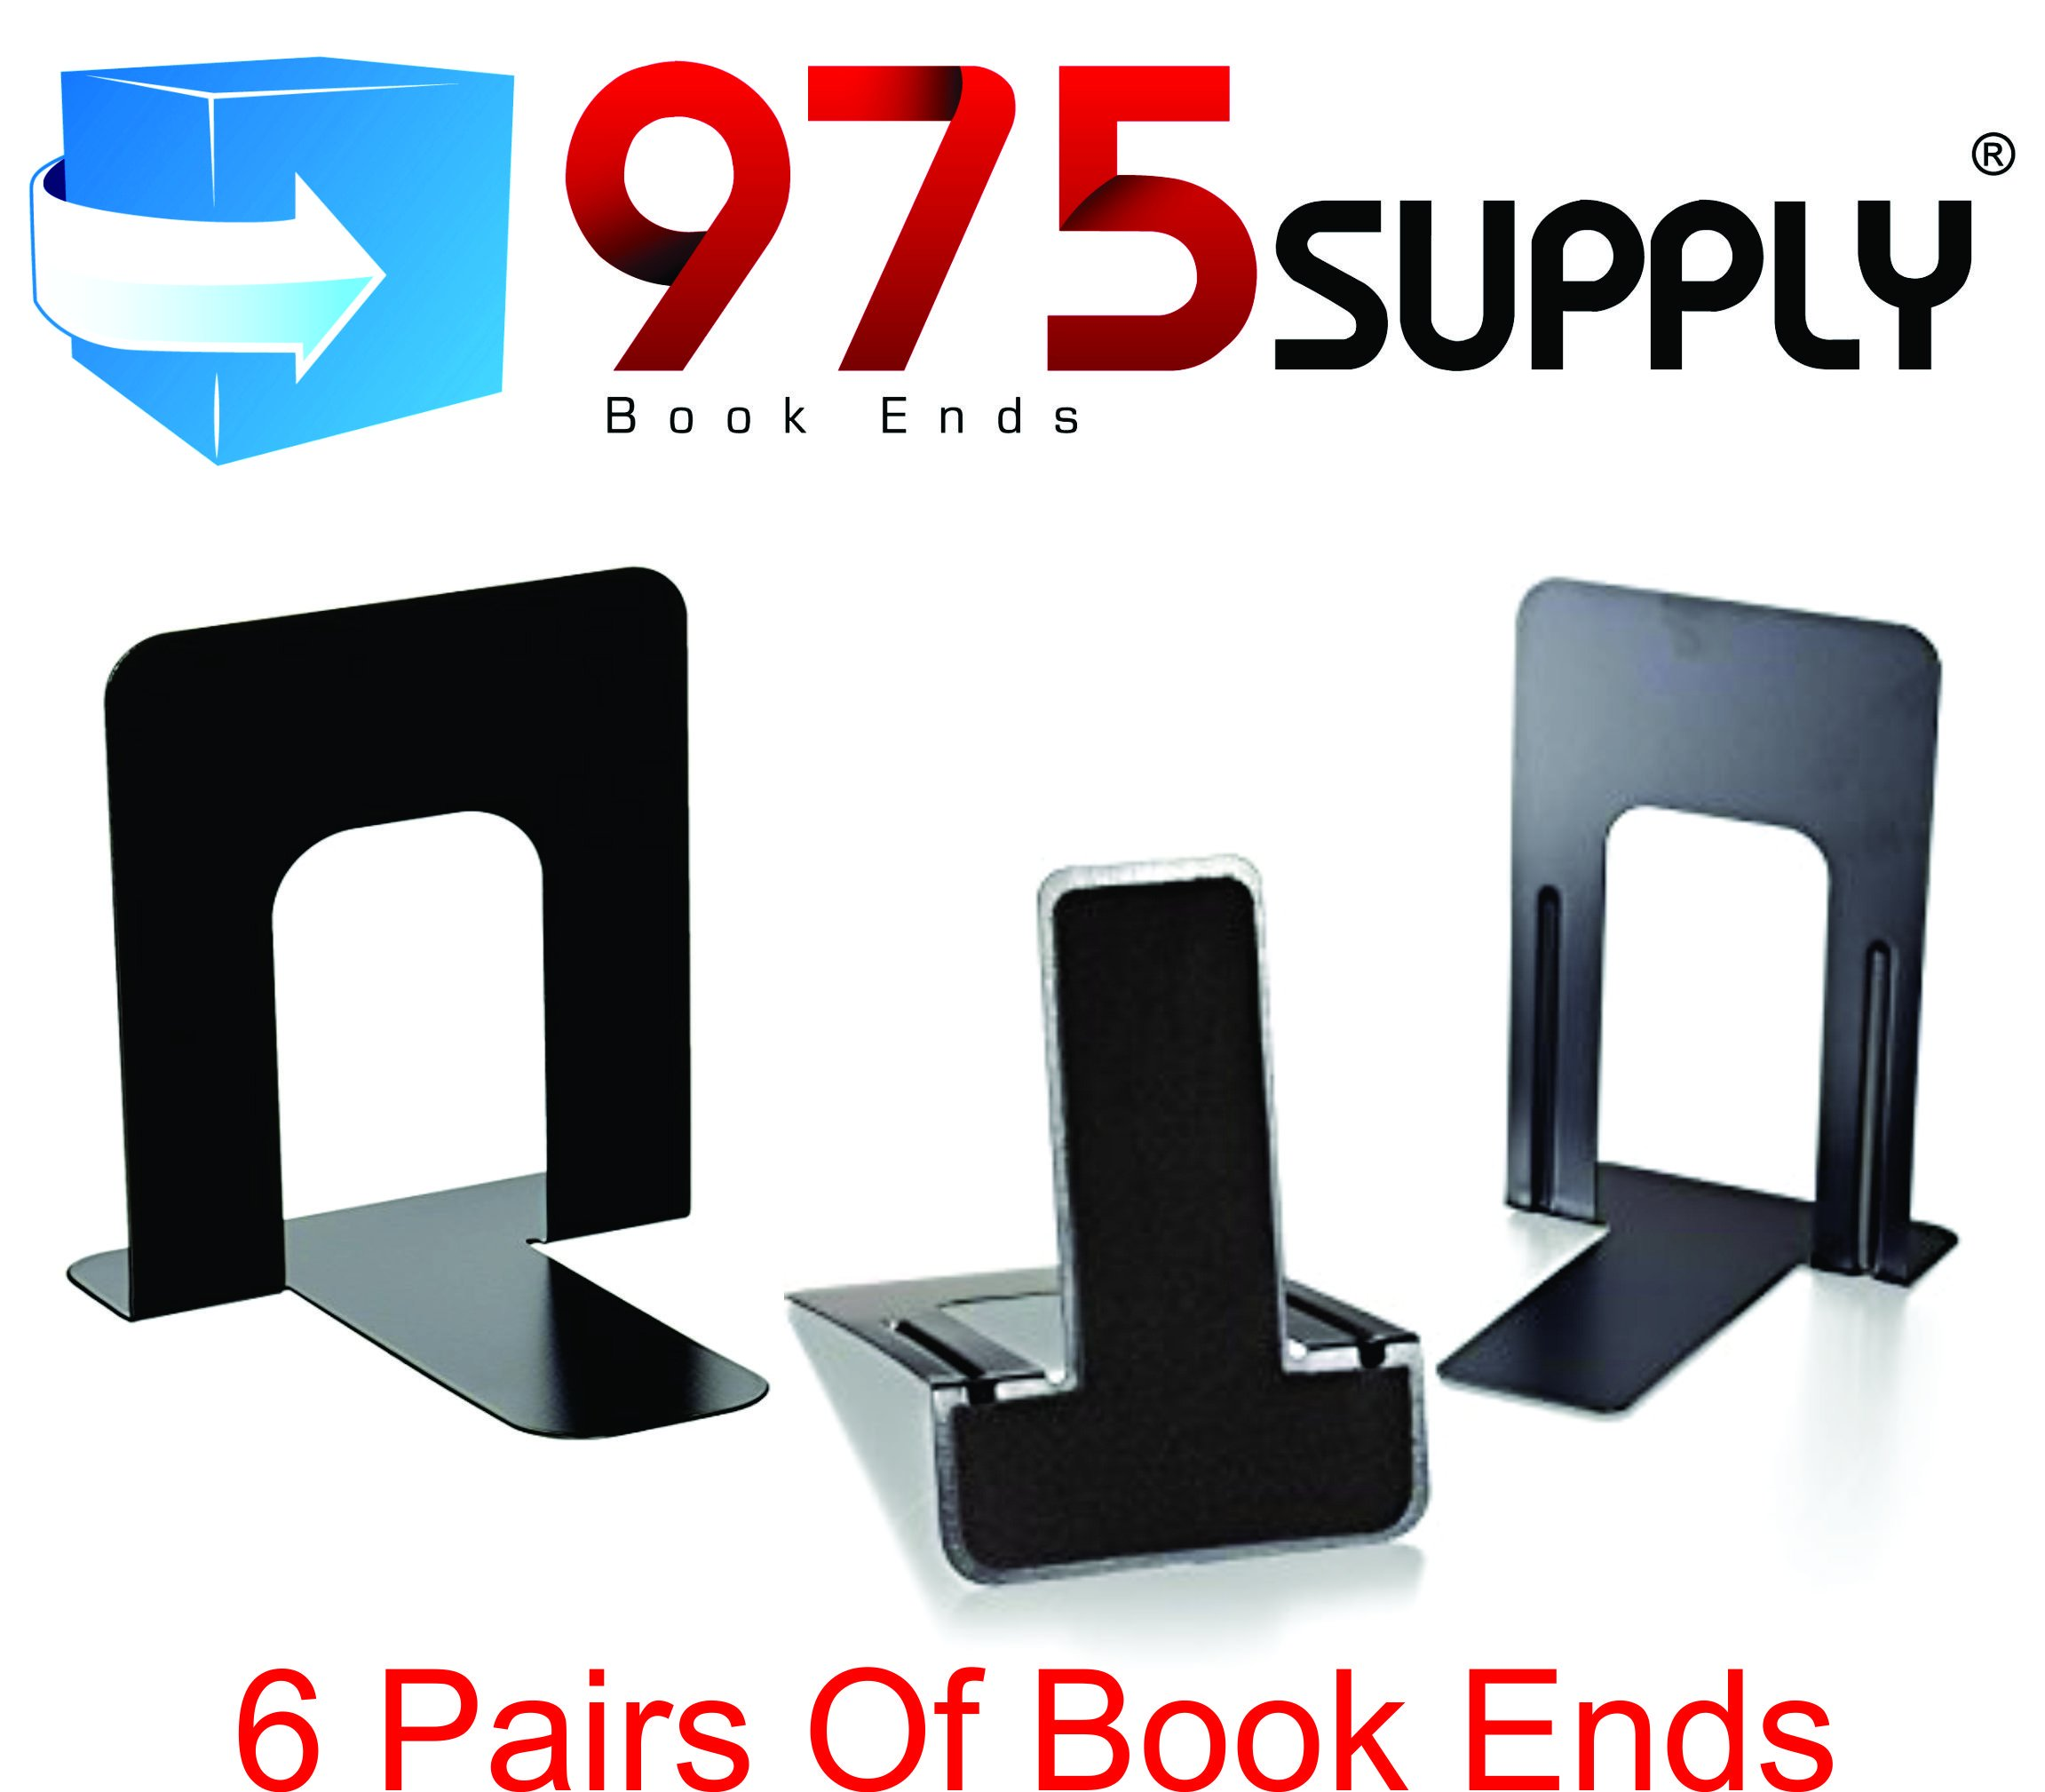 Book Ends - 975 Brand - Standard - 4-9/10'' x 5-7/10'' x 5-3/10'' - Heavy Gauge Steel - Black (6 Pair)